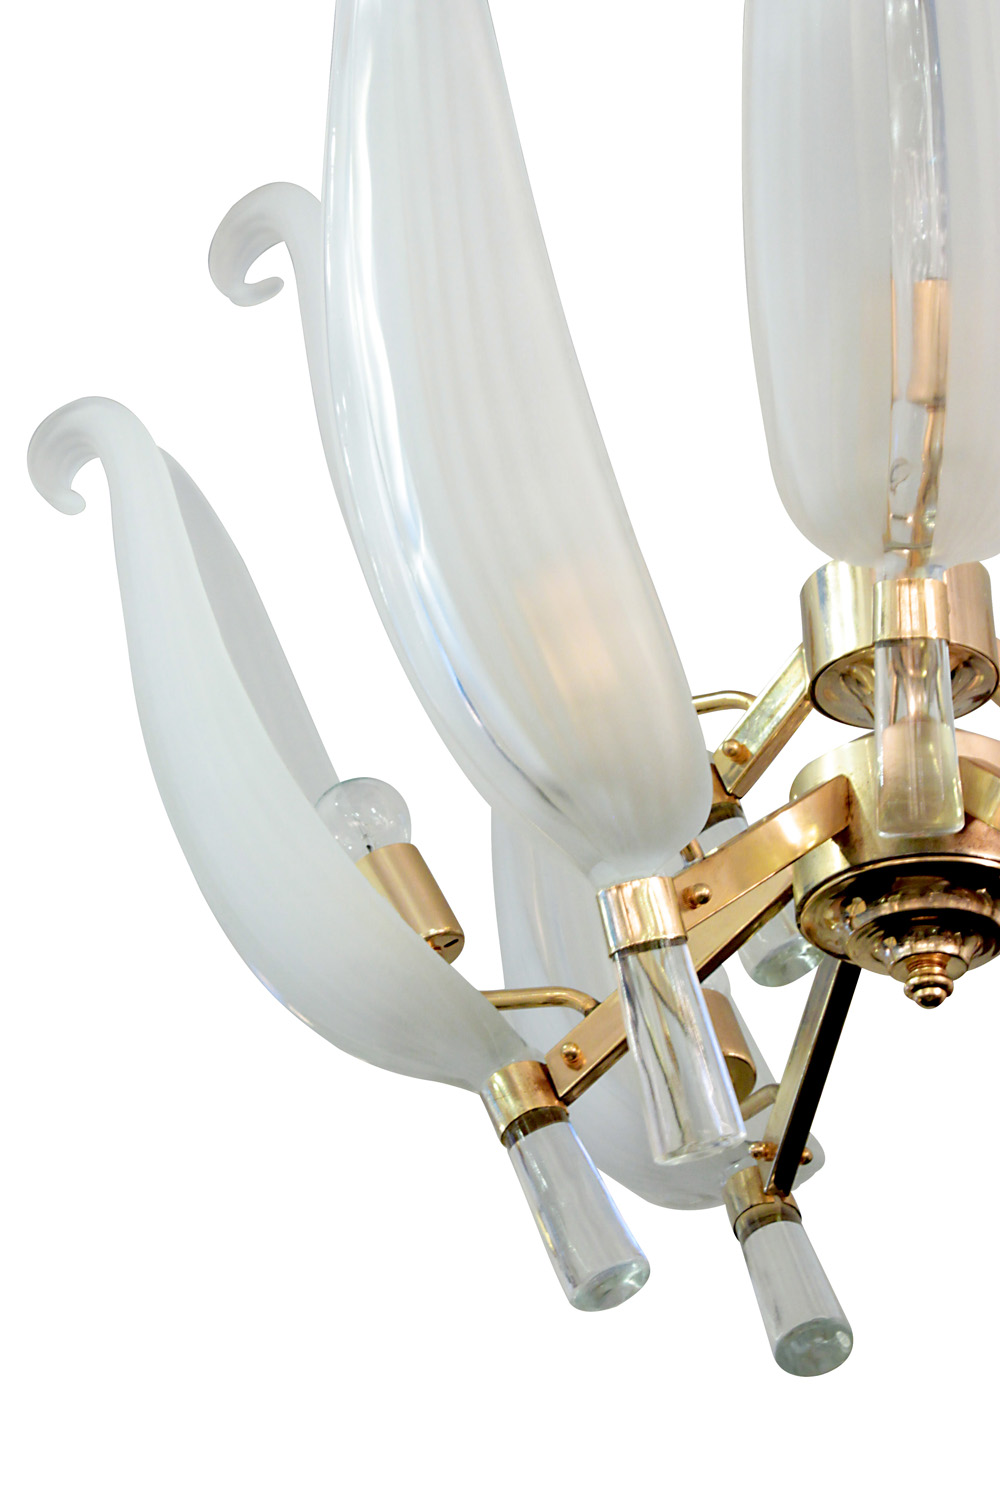 70s Murano 2 tier glass leaves chandelier184 detail hires.jpg